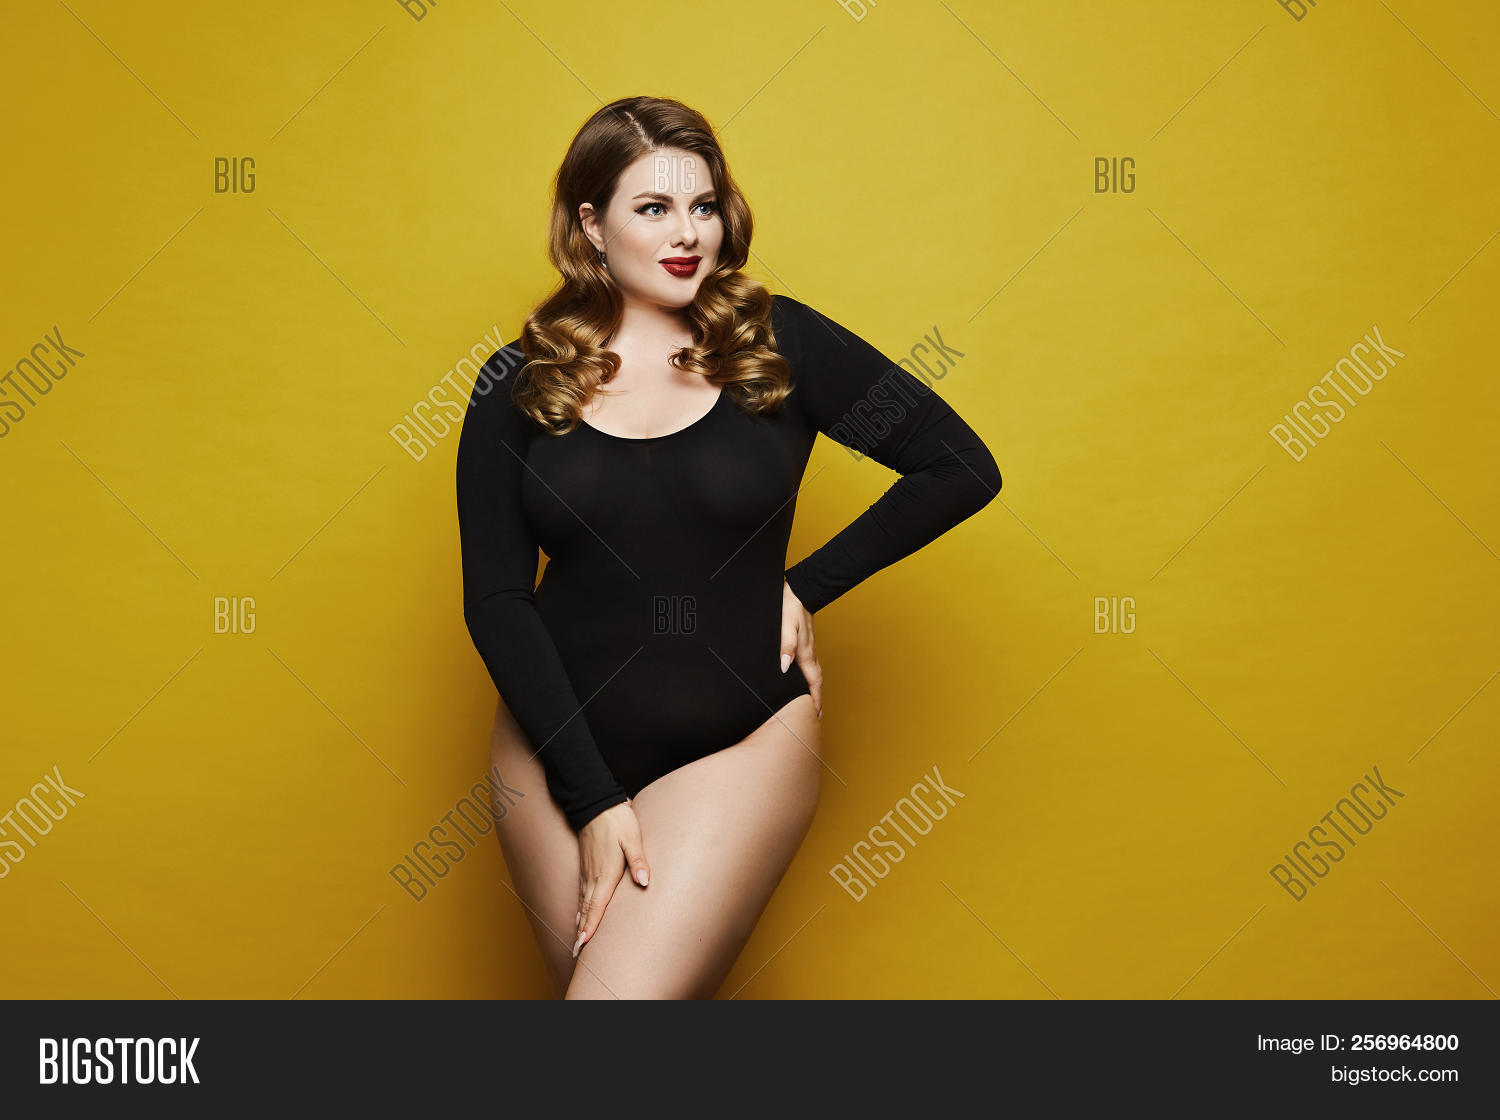 181125186e820 Plus size sexy model, fashionable blonde girl with bright makeup, in black  bodysuit, with stylish hairstyle, smiling and posing at yellow background  in ...